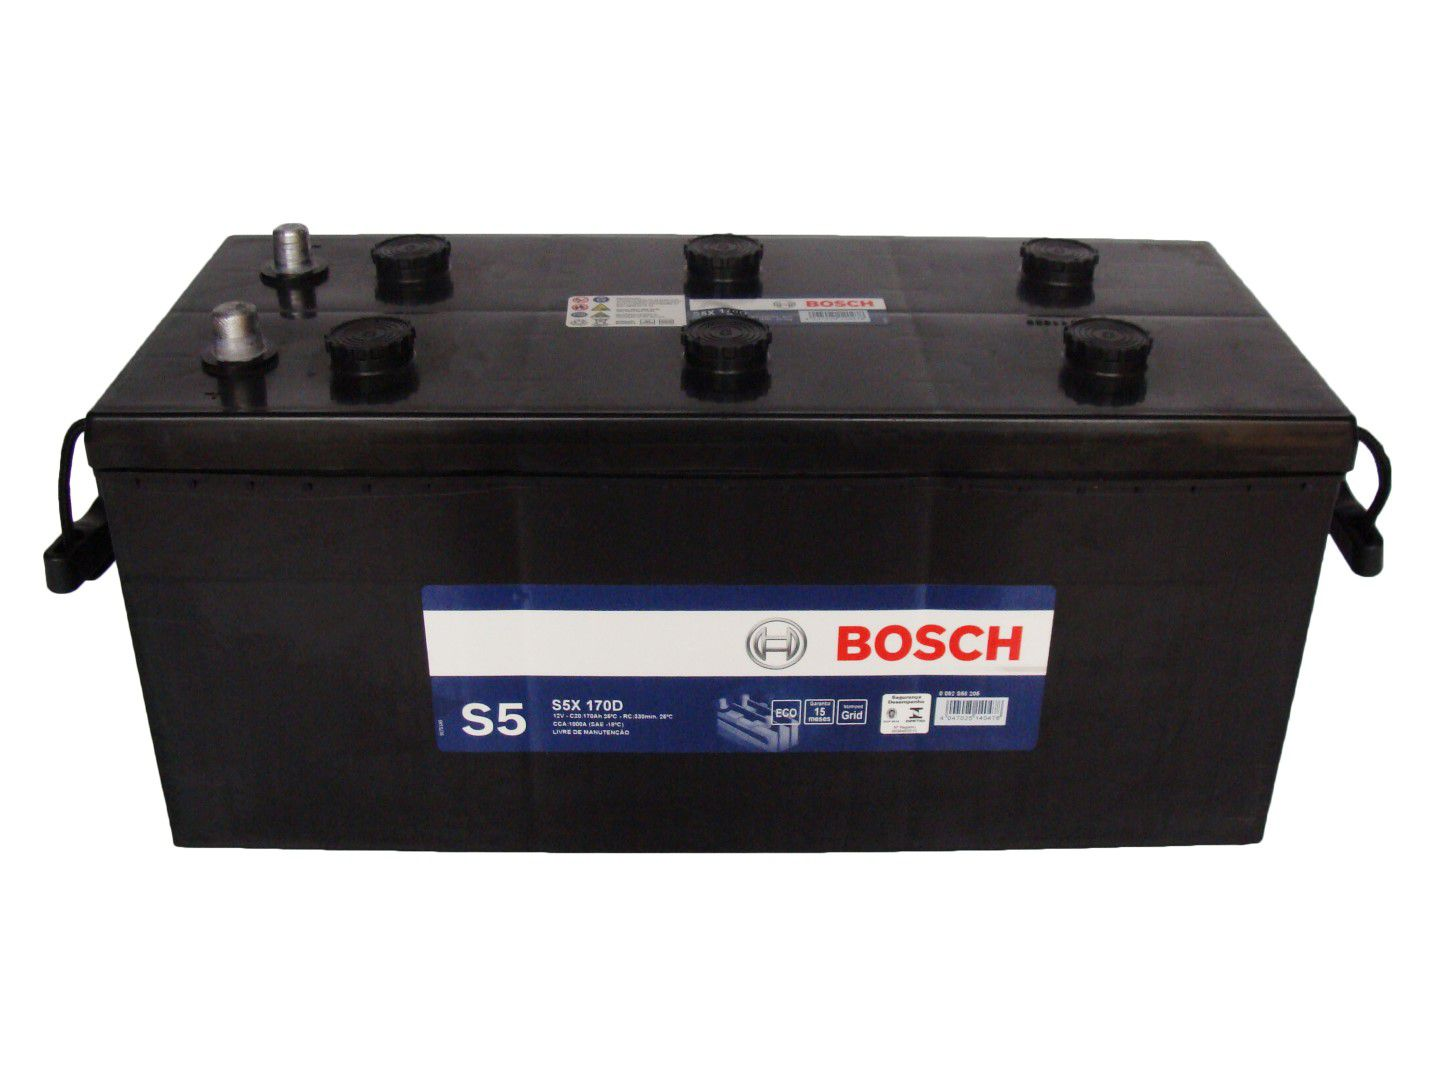 Bateria Automotiva Bosch 170ah Mercedes 915 Volkswagen CONSTELLATION Scania G 380 12v S5X170D